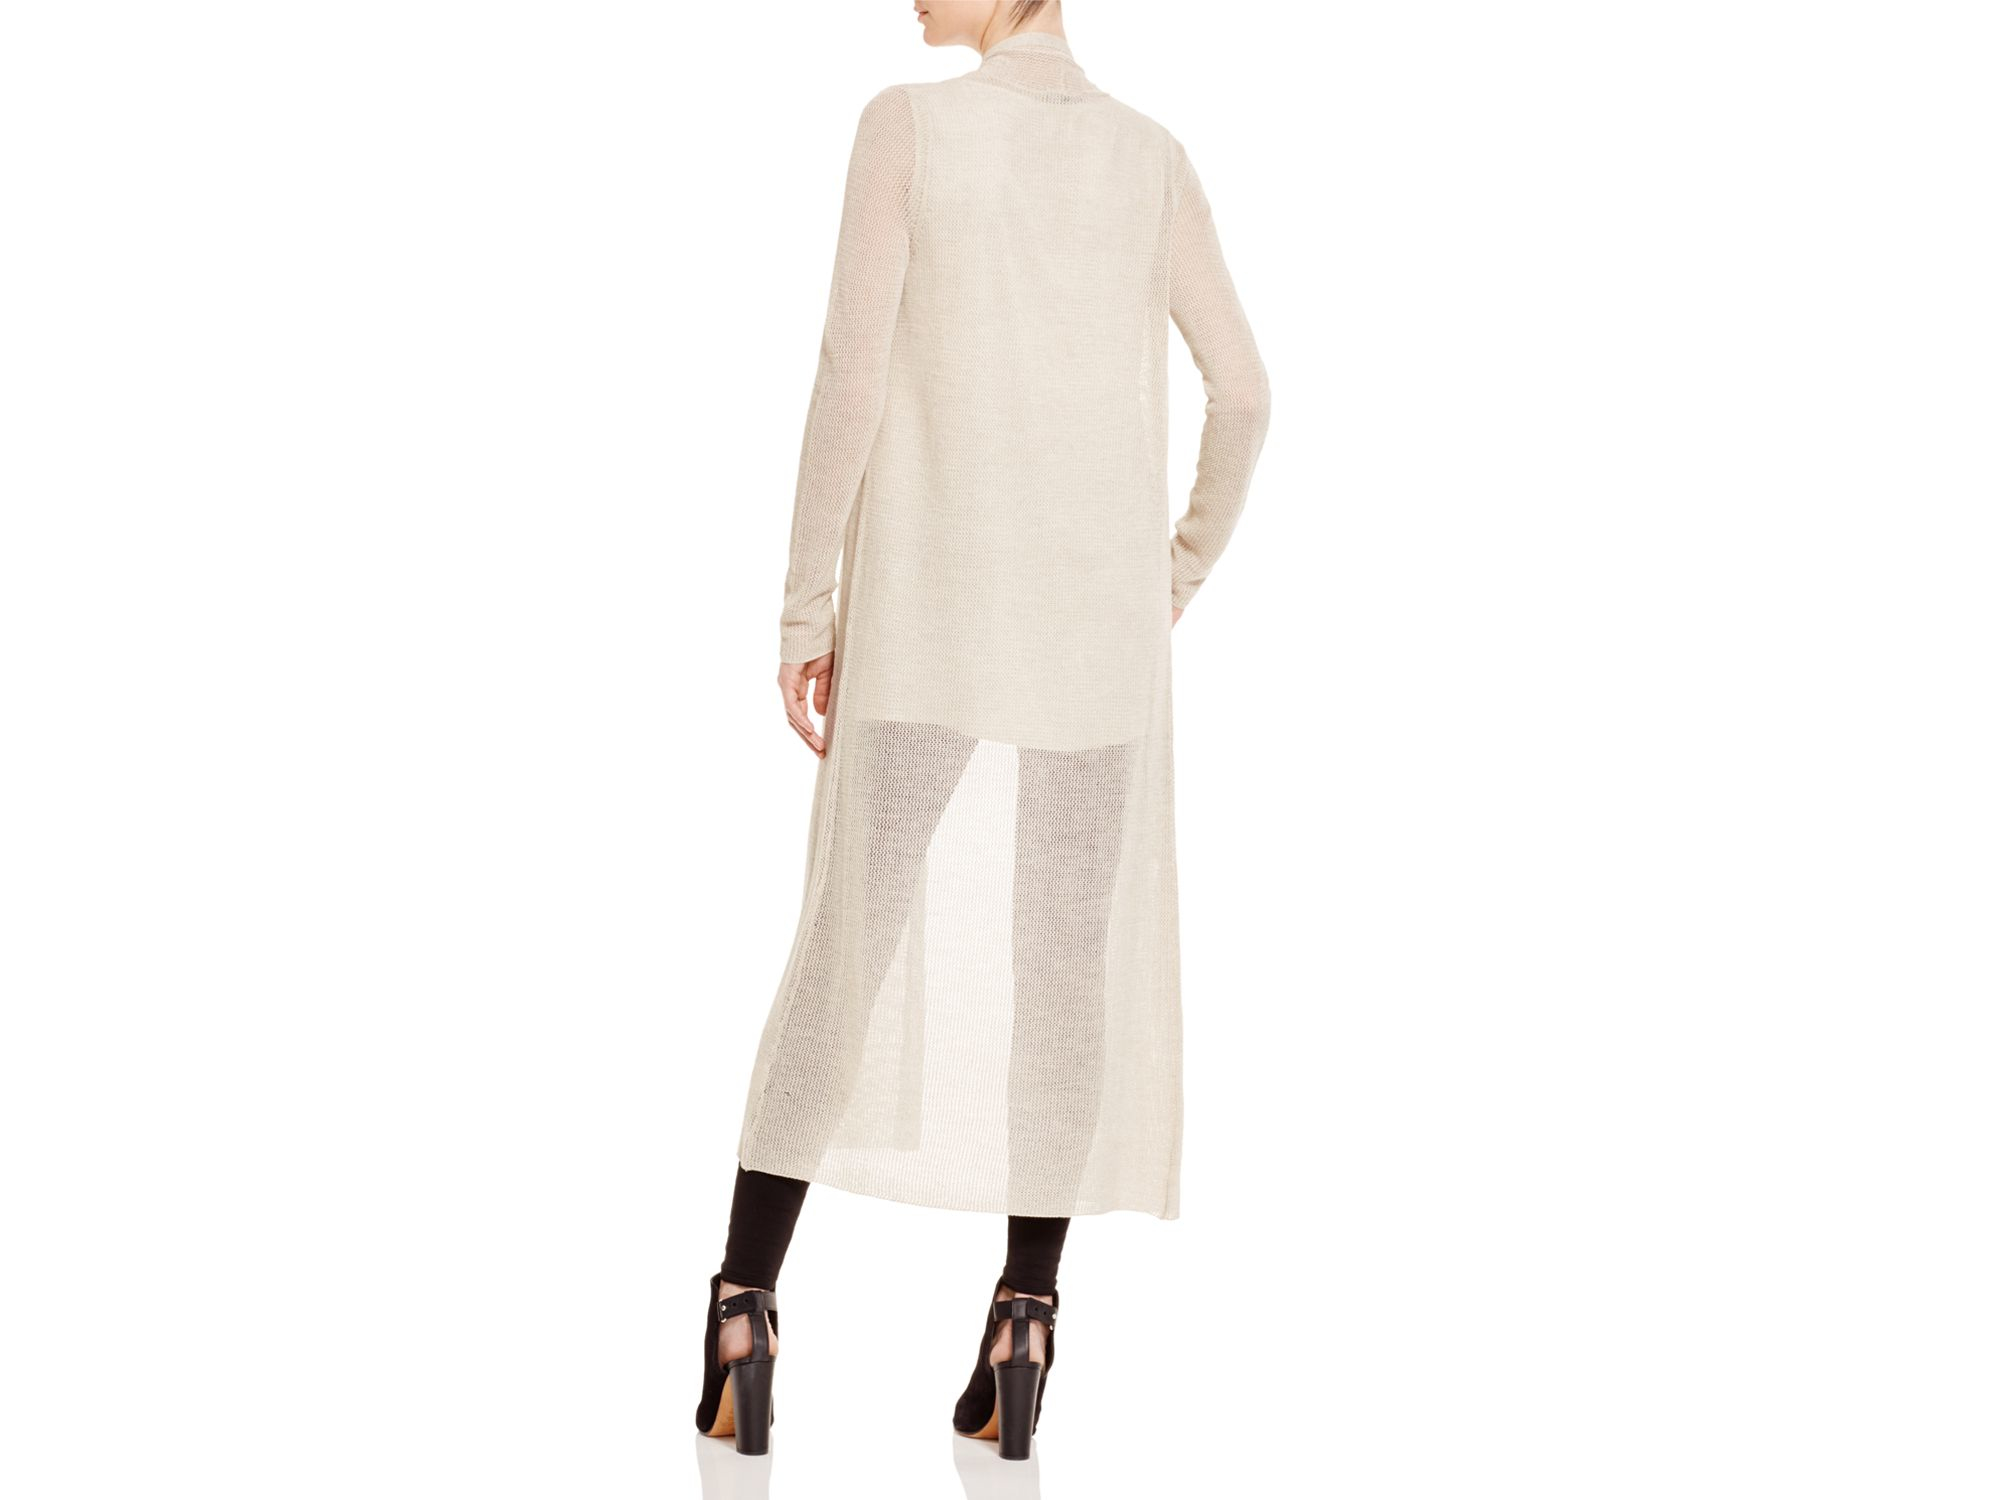 Eileen fisher Sheer Long Cardigan in Natural | Lyst